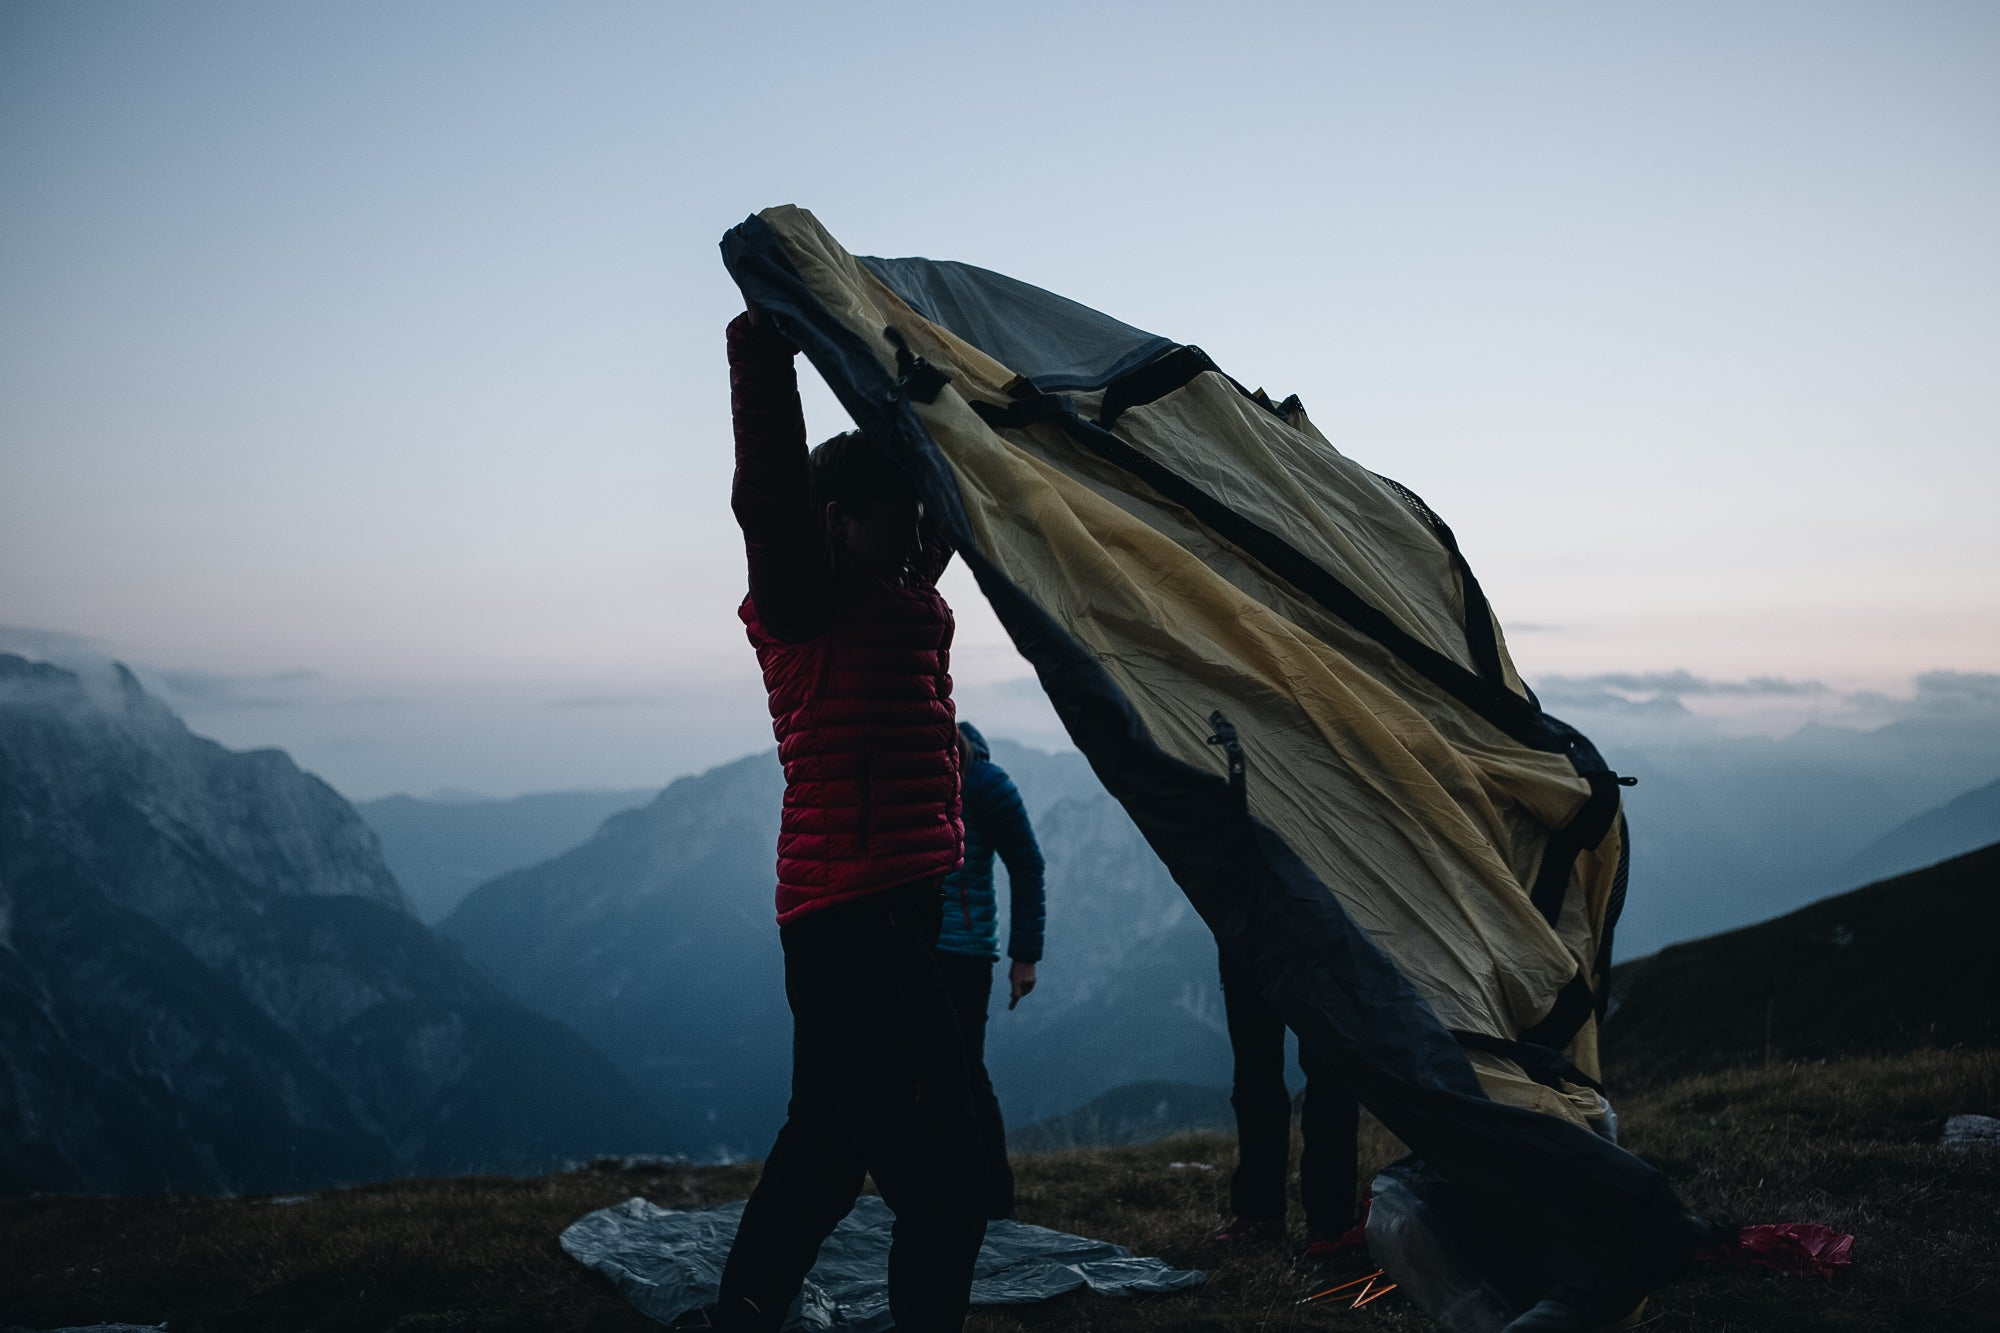 Two people putting up a 4 season mountain tent in the Slovenian mountains